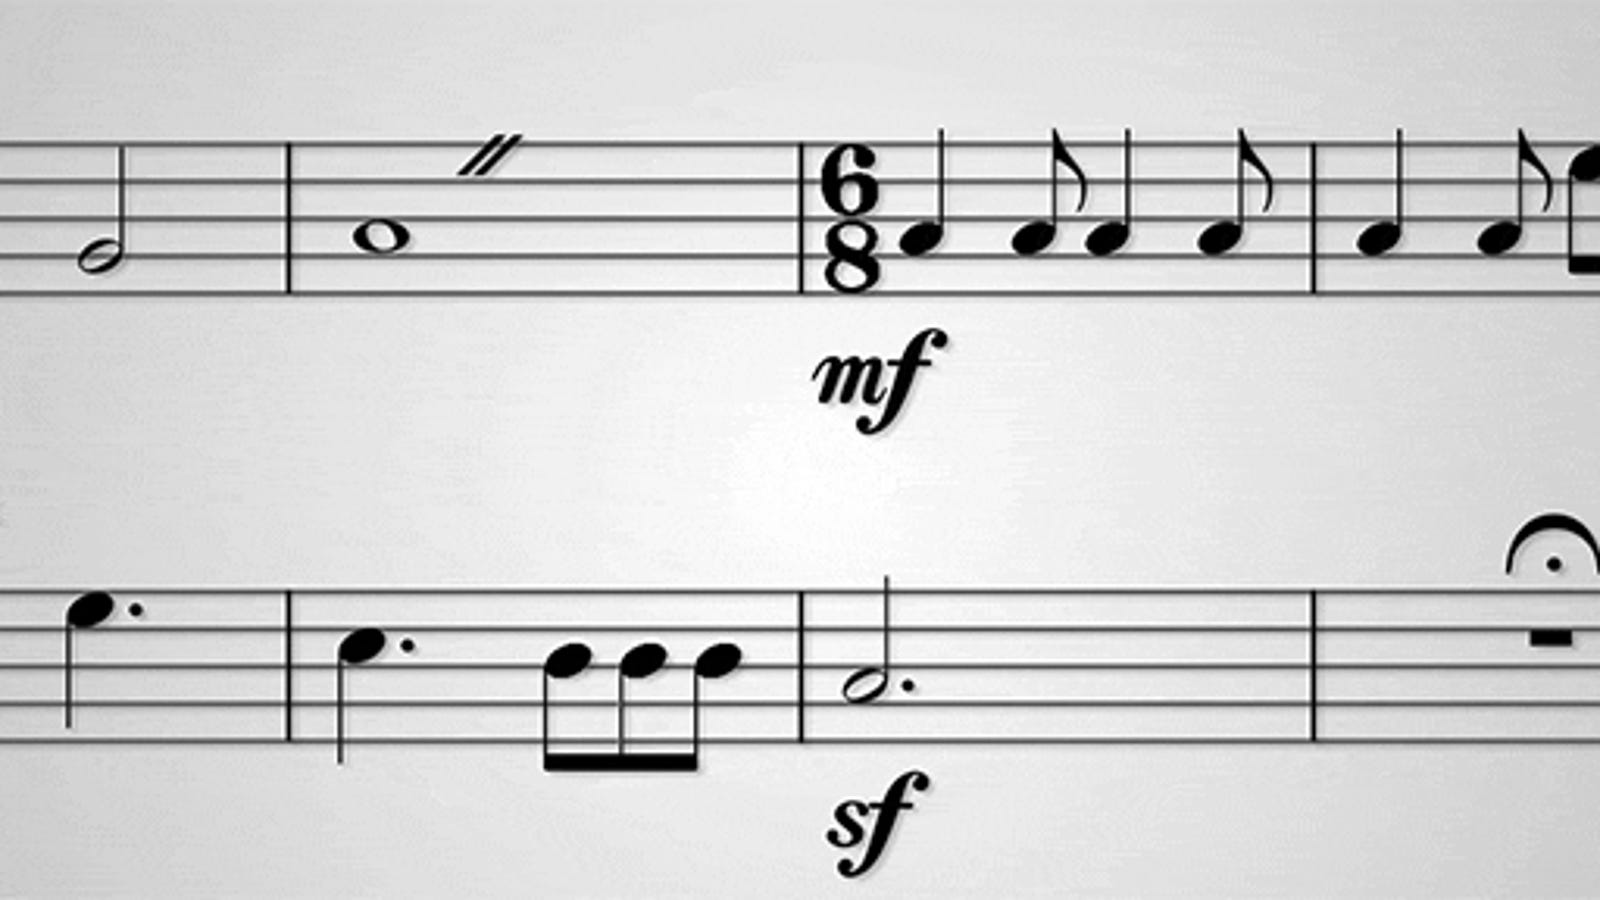 Fun Video Hilariously Explains What All Those Random Symbols on Sheet Music Mean